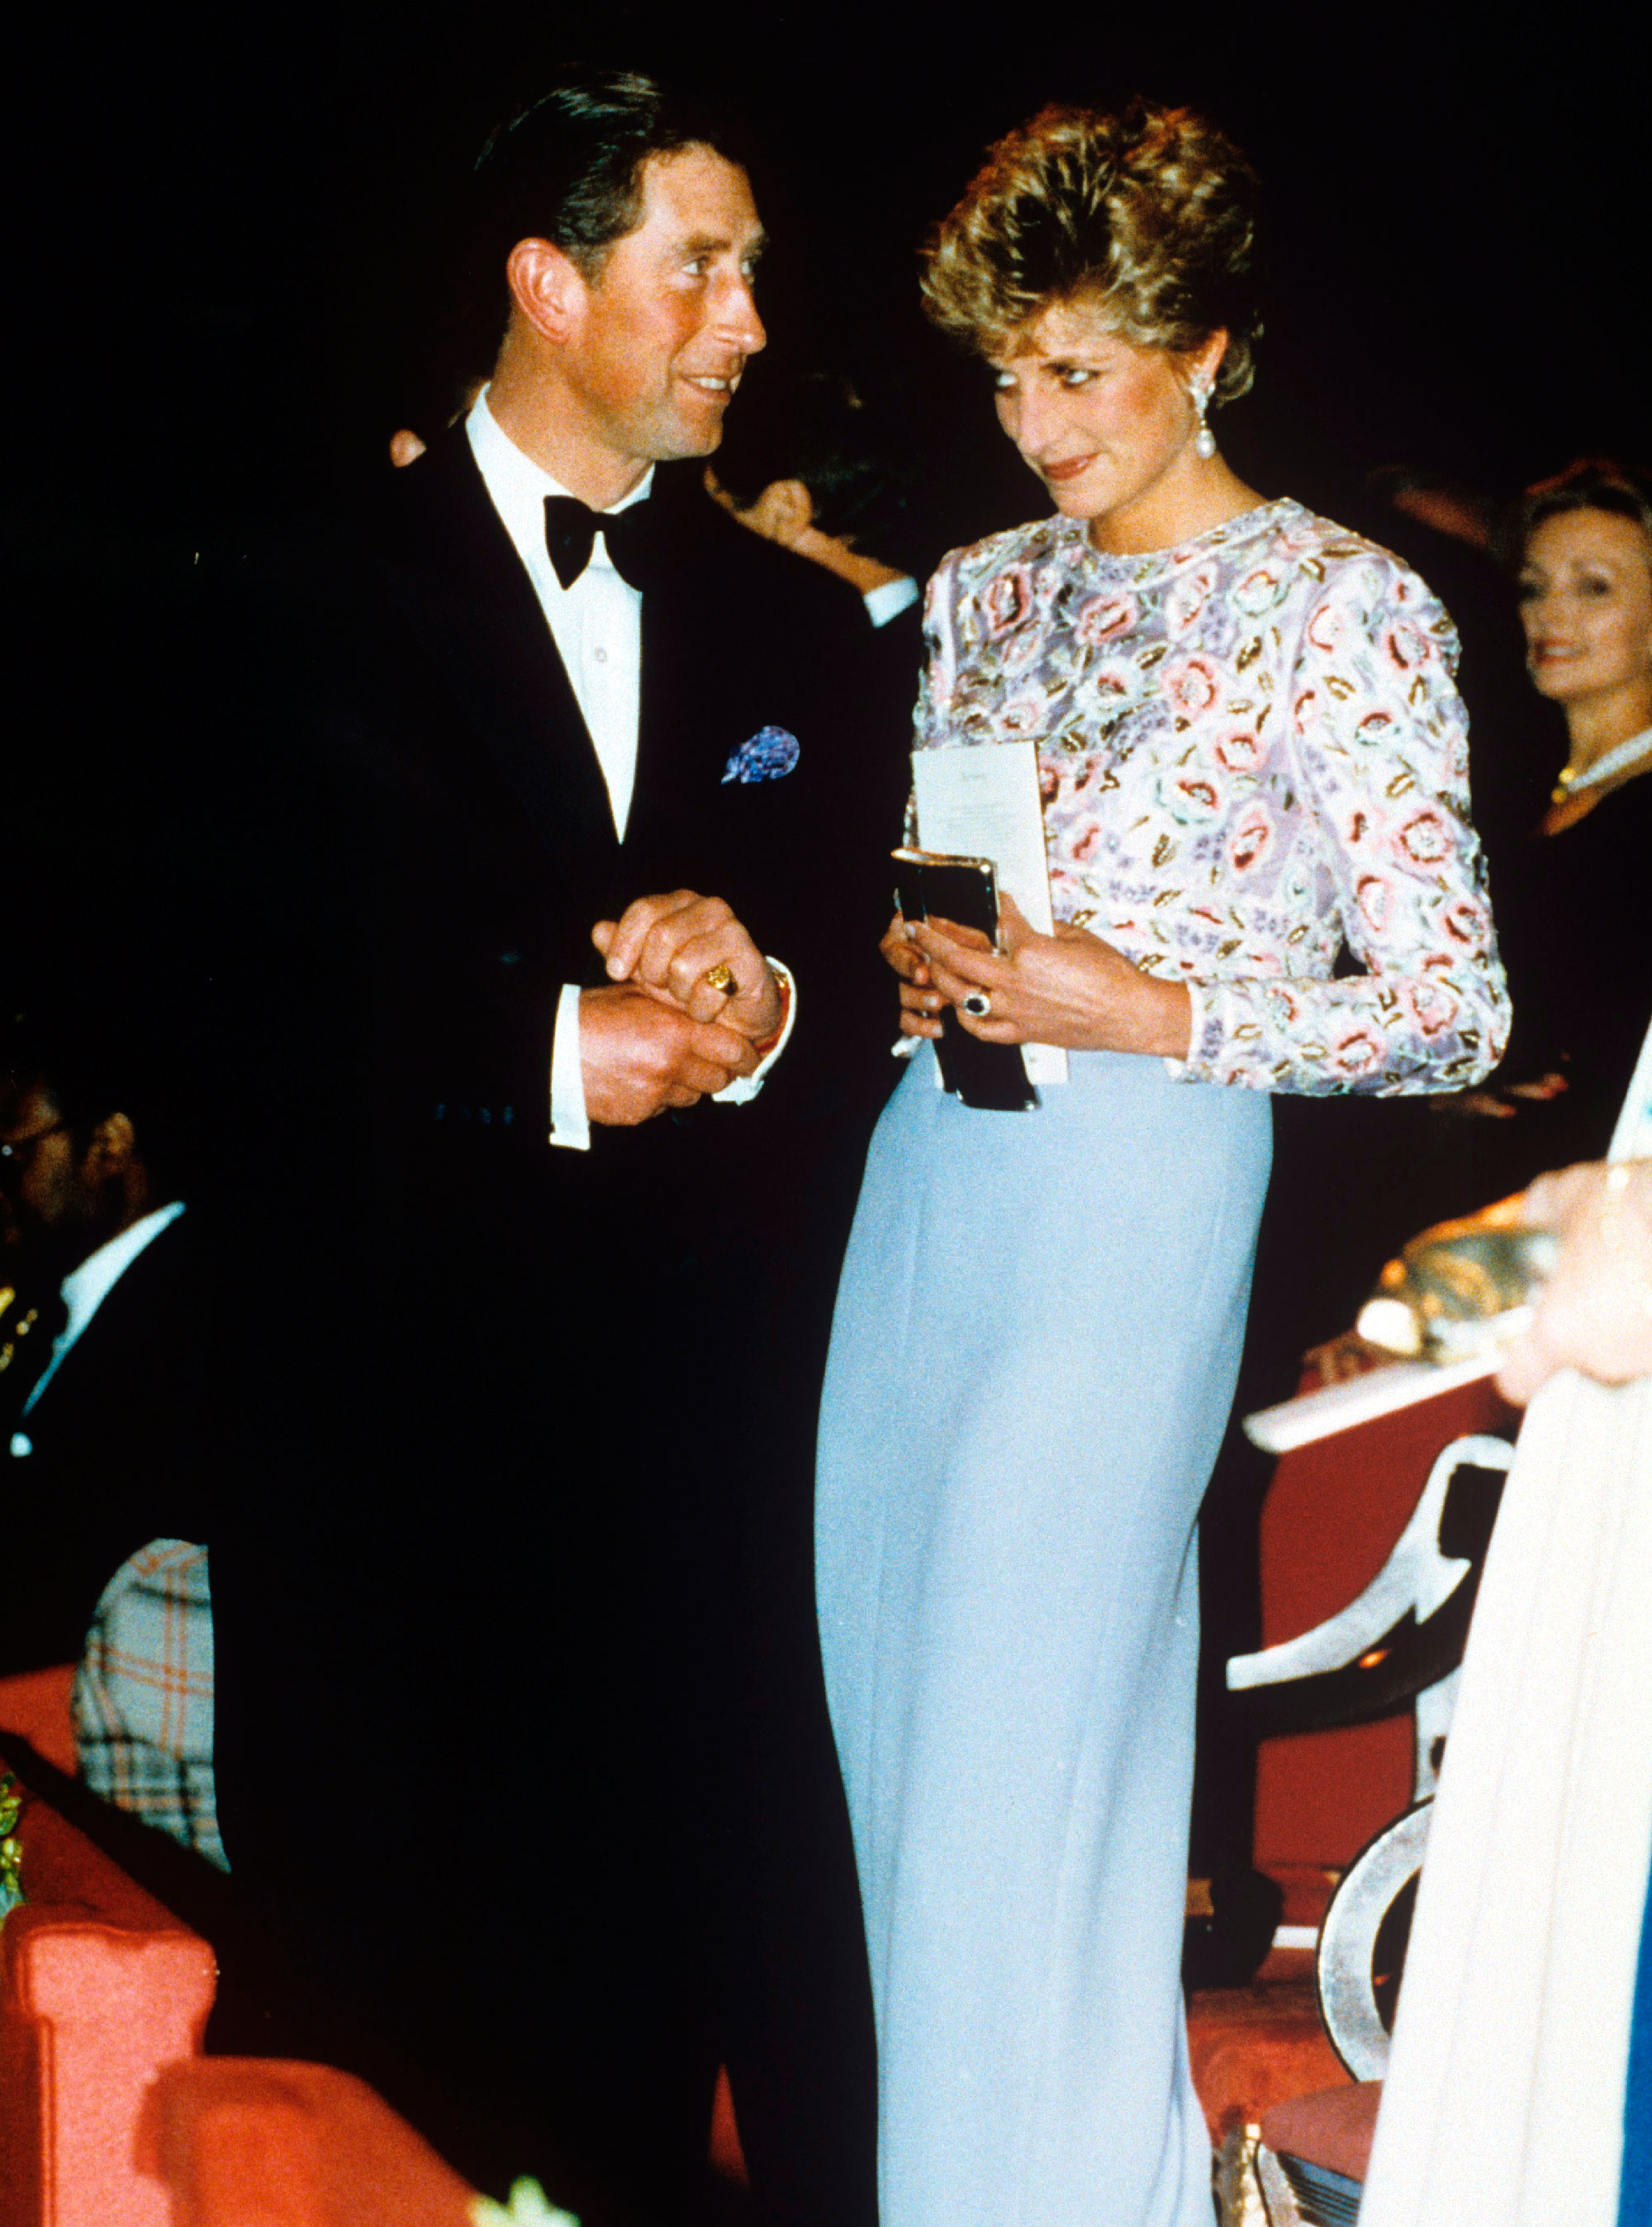 Feud: Charles and Diana Will Be A Female-Driven Story